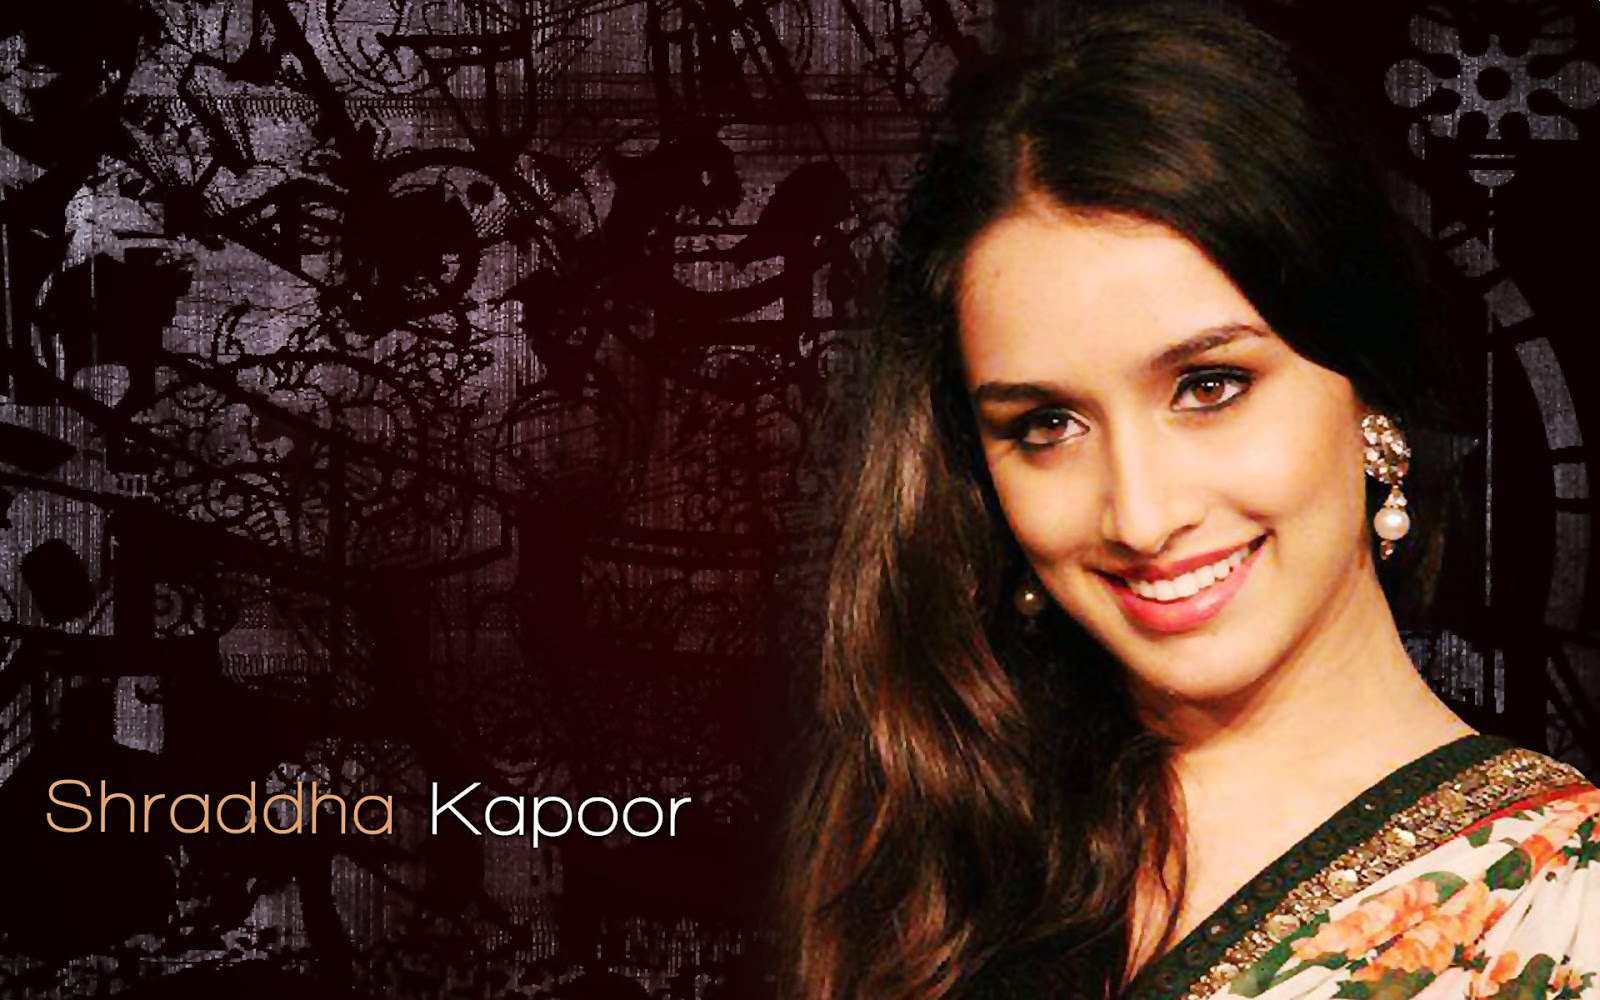 shraddha kapoor images, hot photos & hd wallpapers - hd images